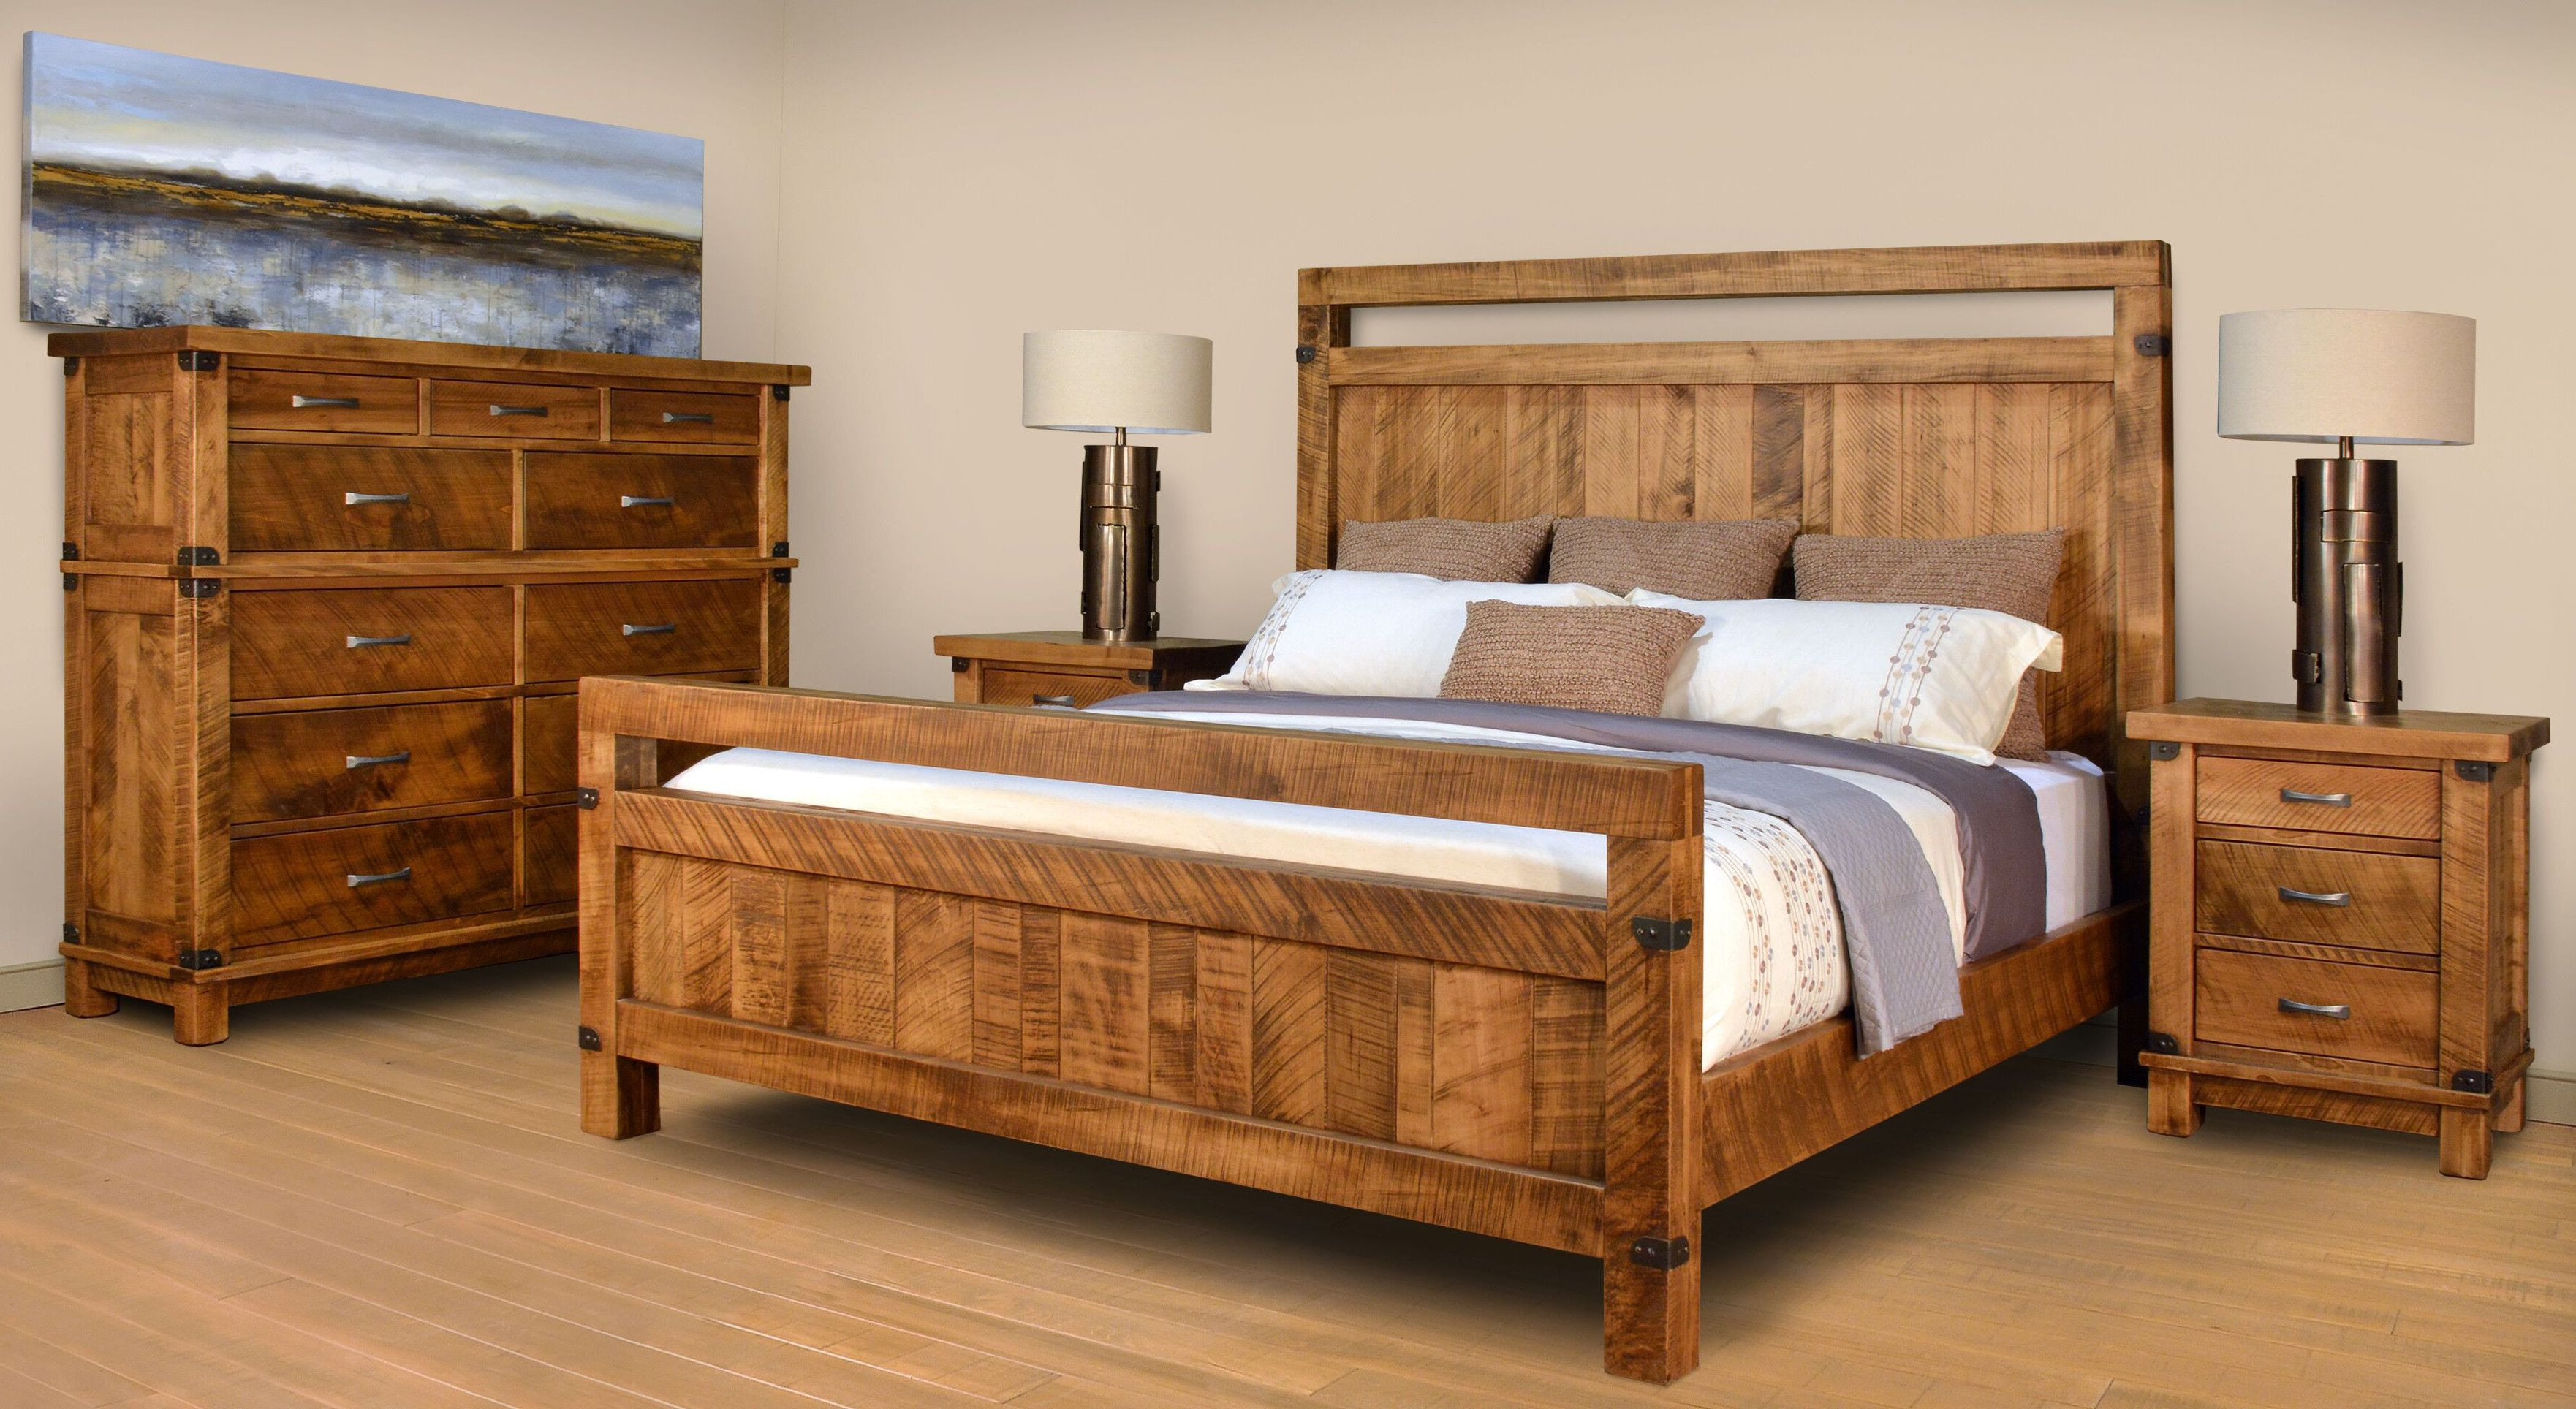 Ruff Sawn Galley Bedroom Furniture Collection